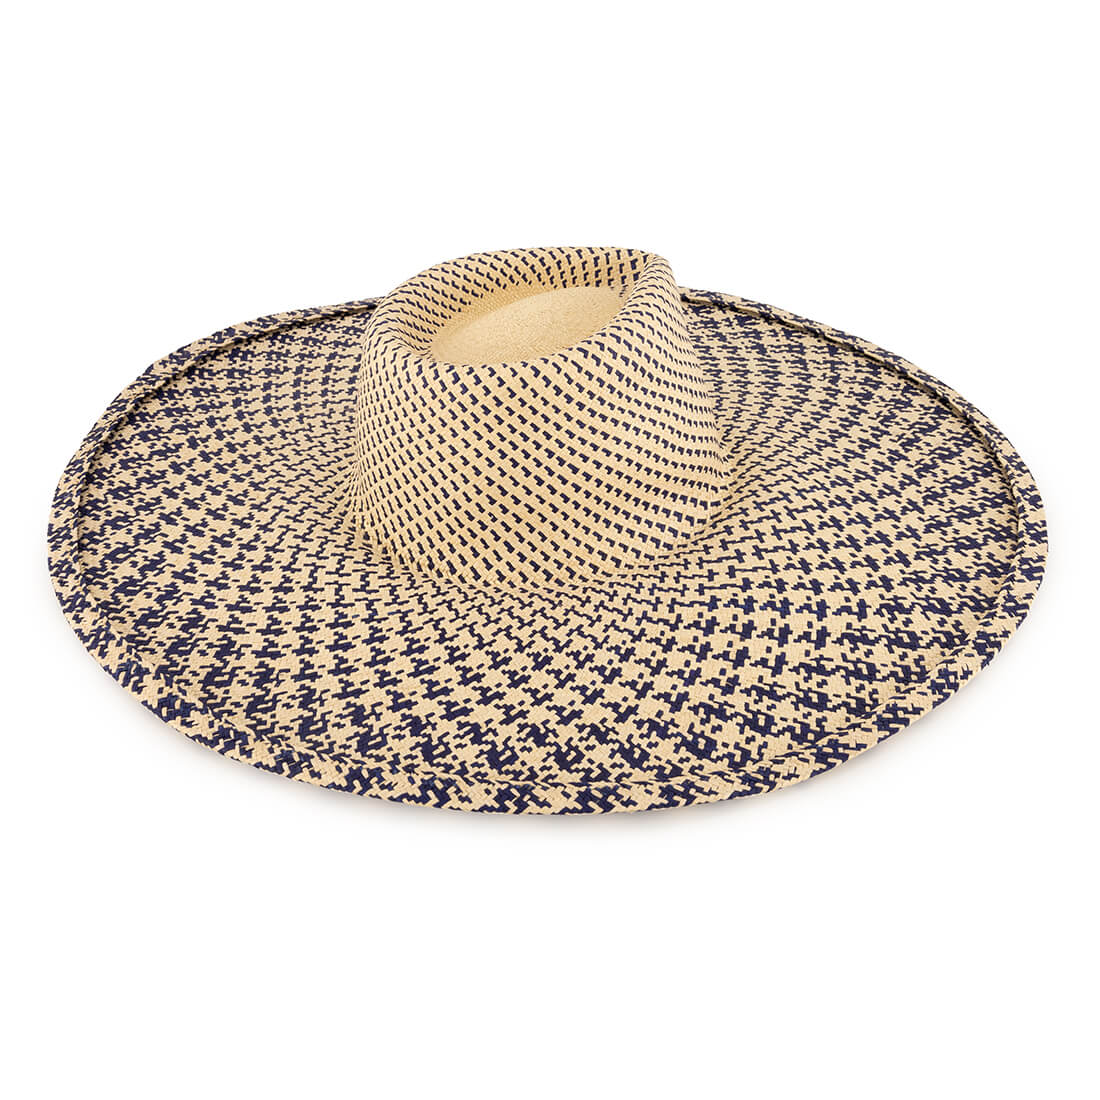 Palm woven hat 1